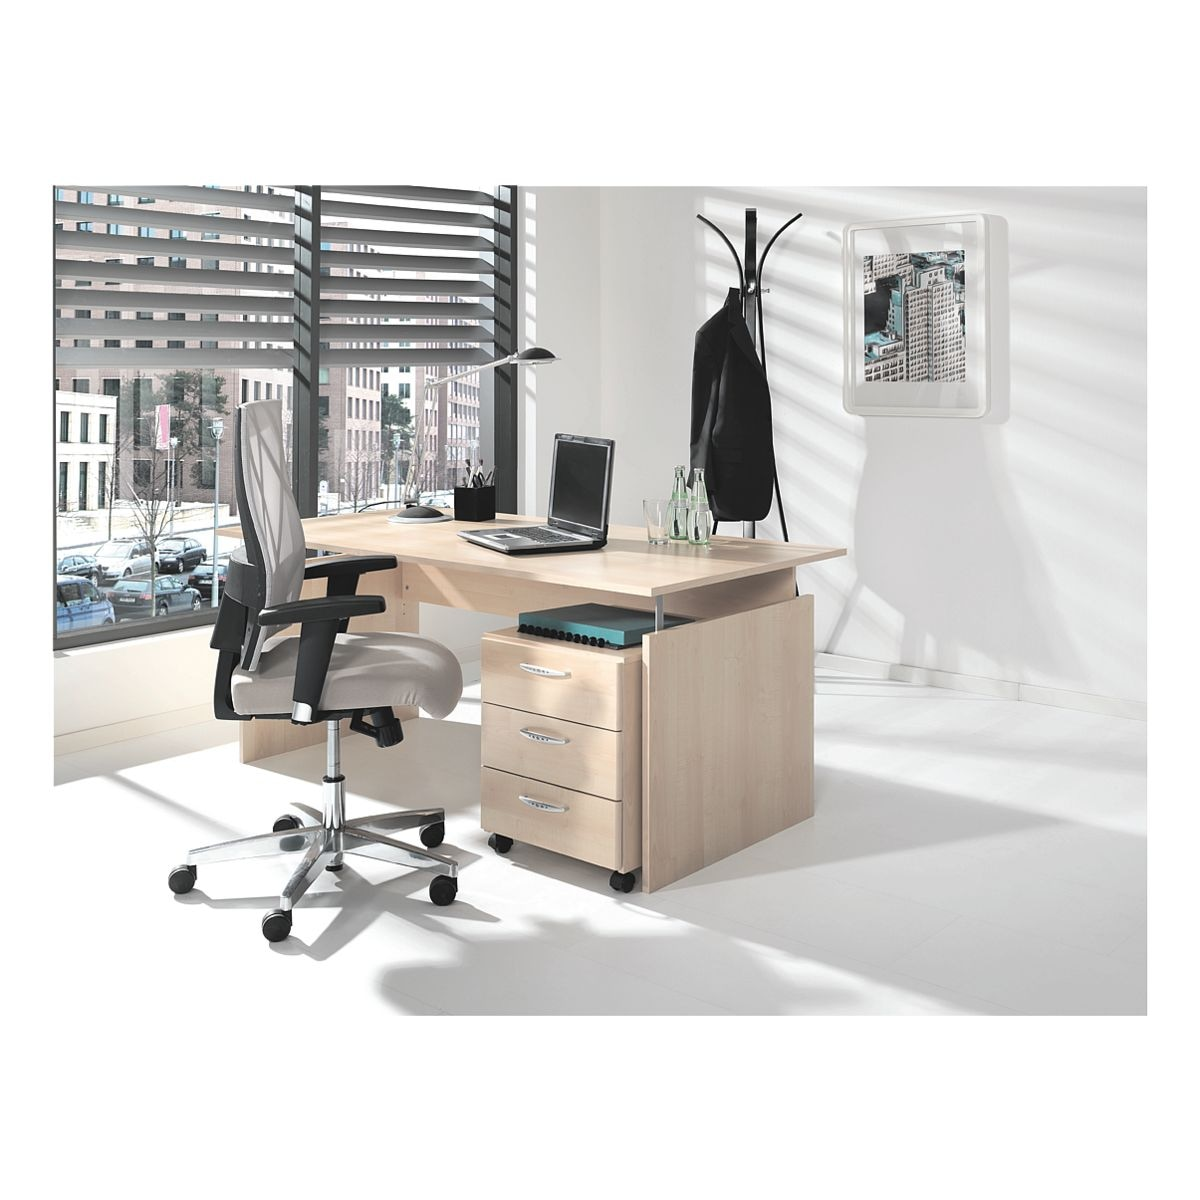 wellem bel m bel set adria 2 teilig schreibtisch mit wangenfu bei otto office g nstig kaufen. Black Bedroom Furniture Sets. Home Design Ideas